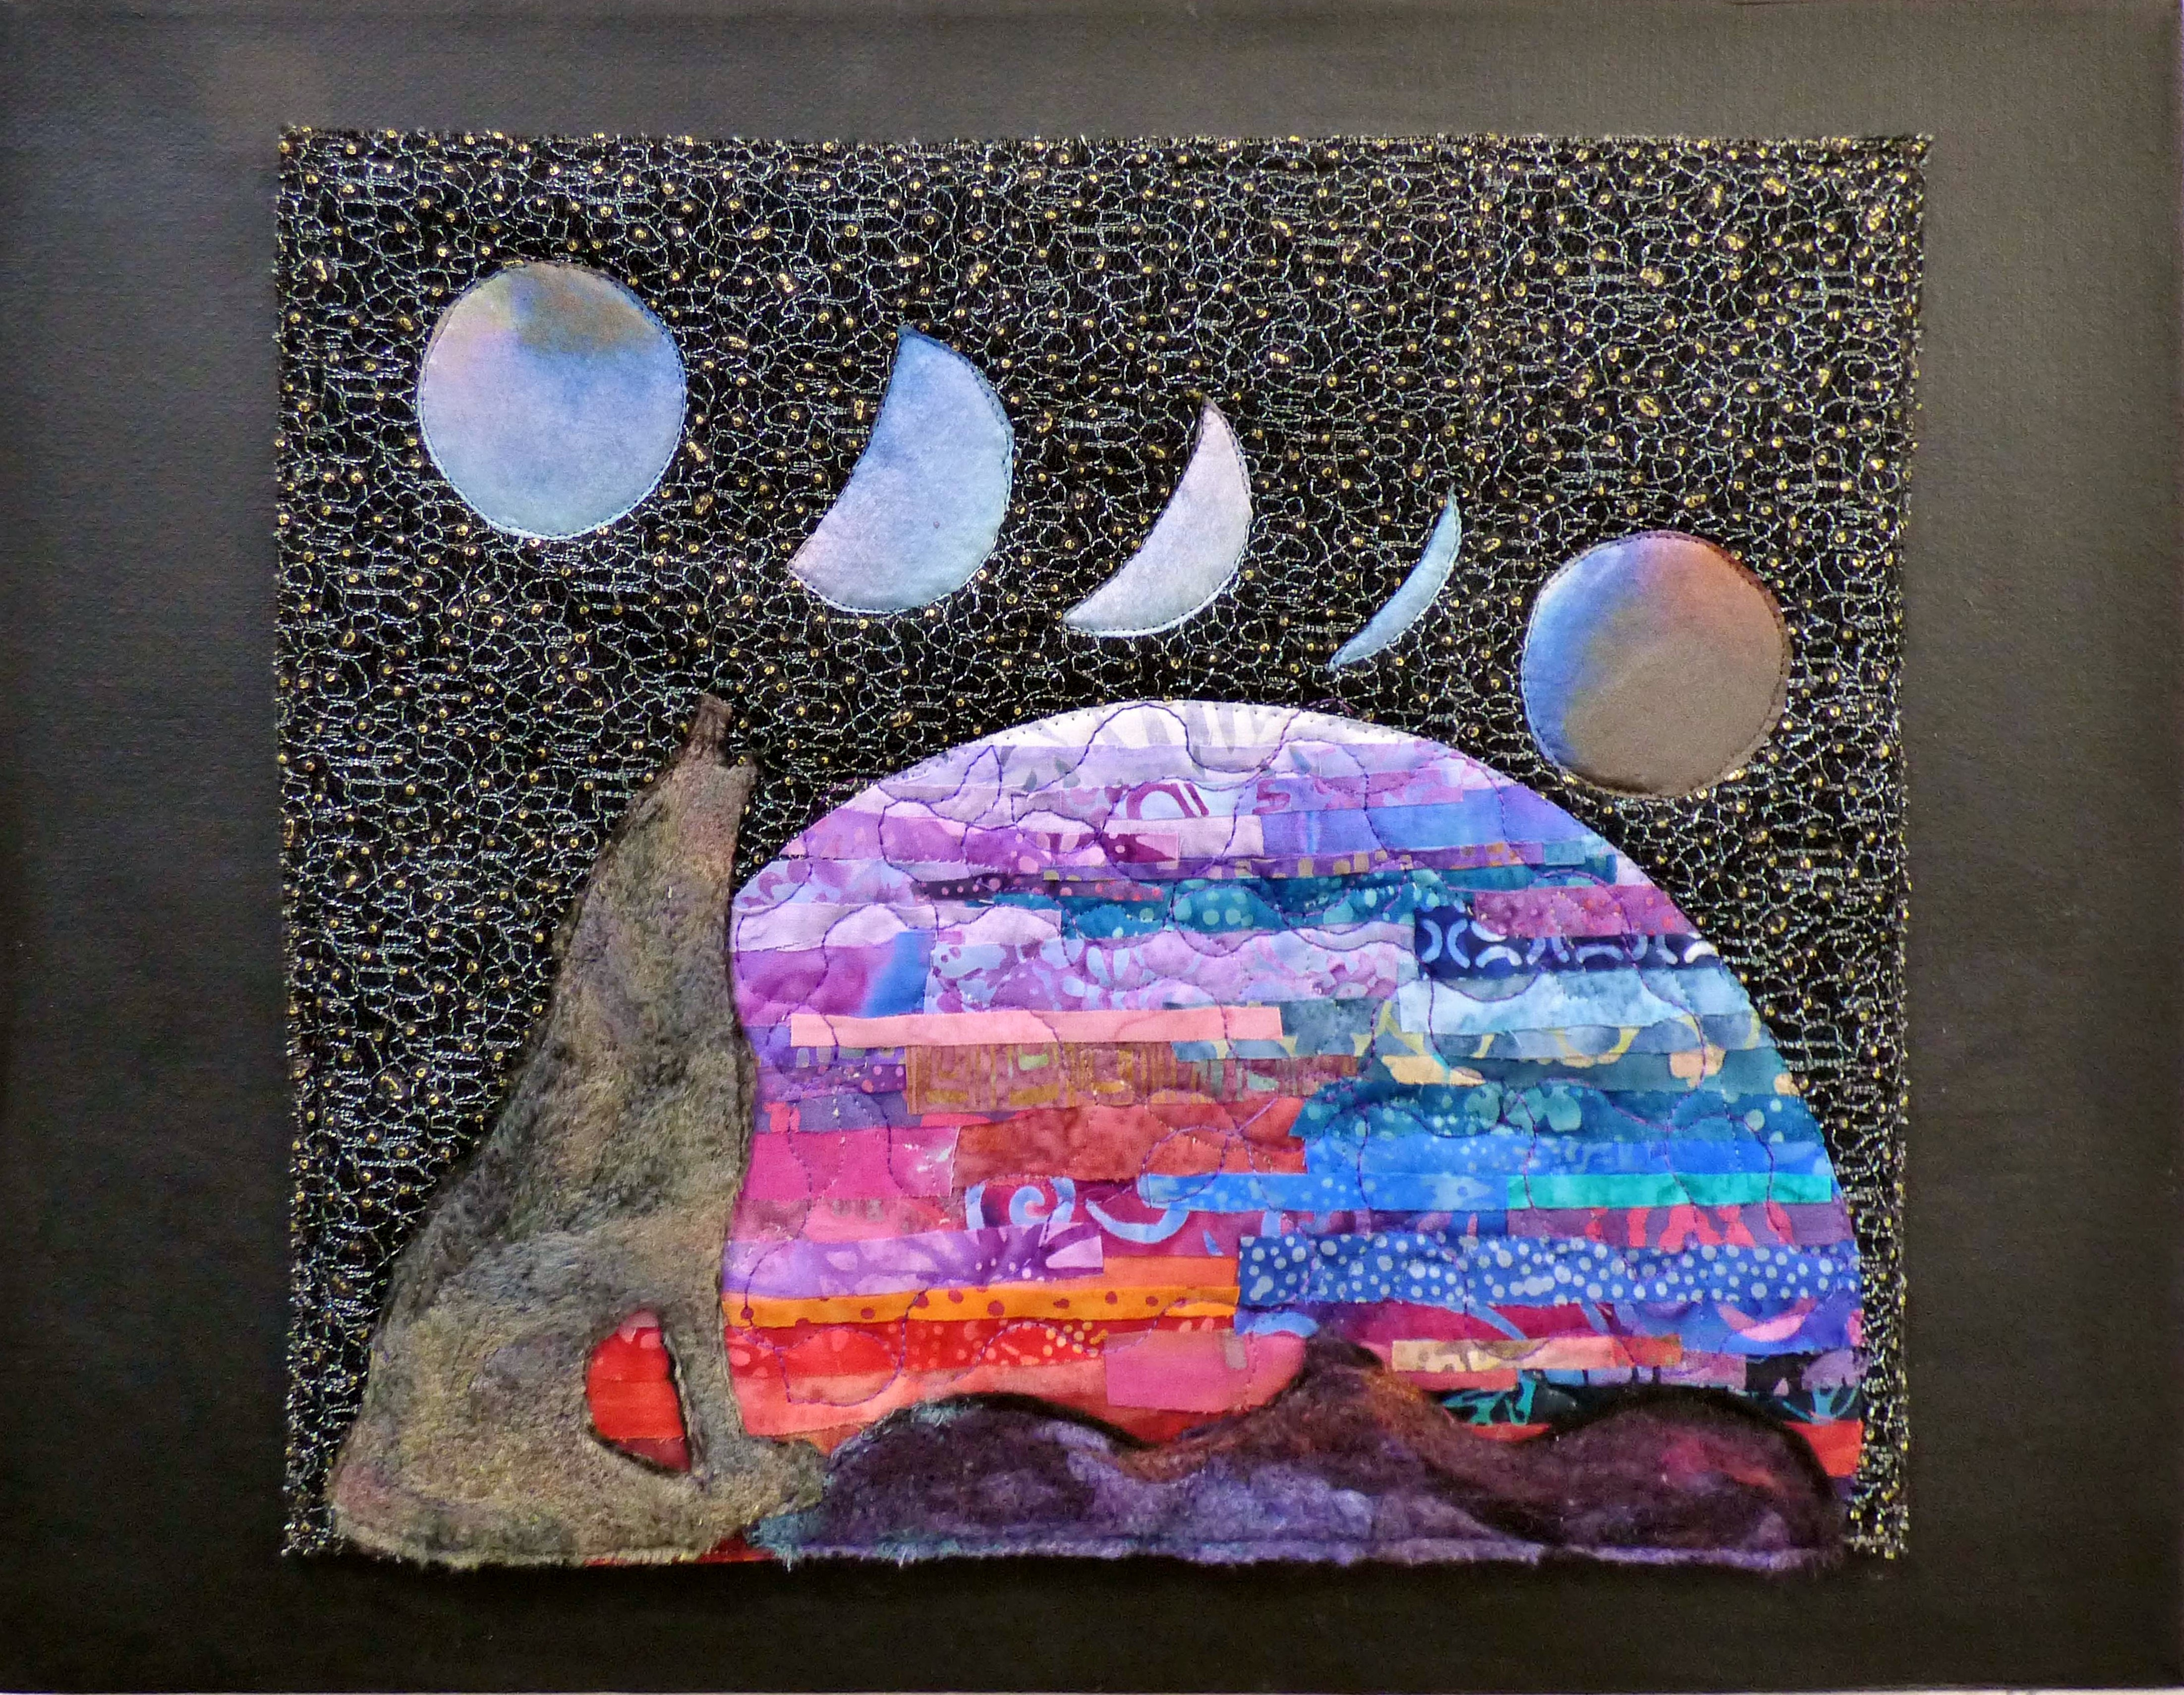 PHASES OF THE MOON: WOLF MOON ECLIPSE by Eileen Norris, Natural Progression Textile Group, Jan 2020